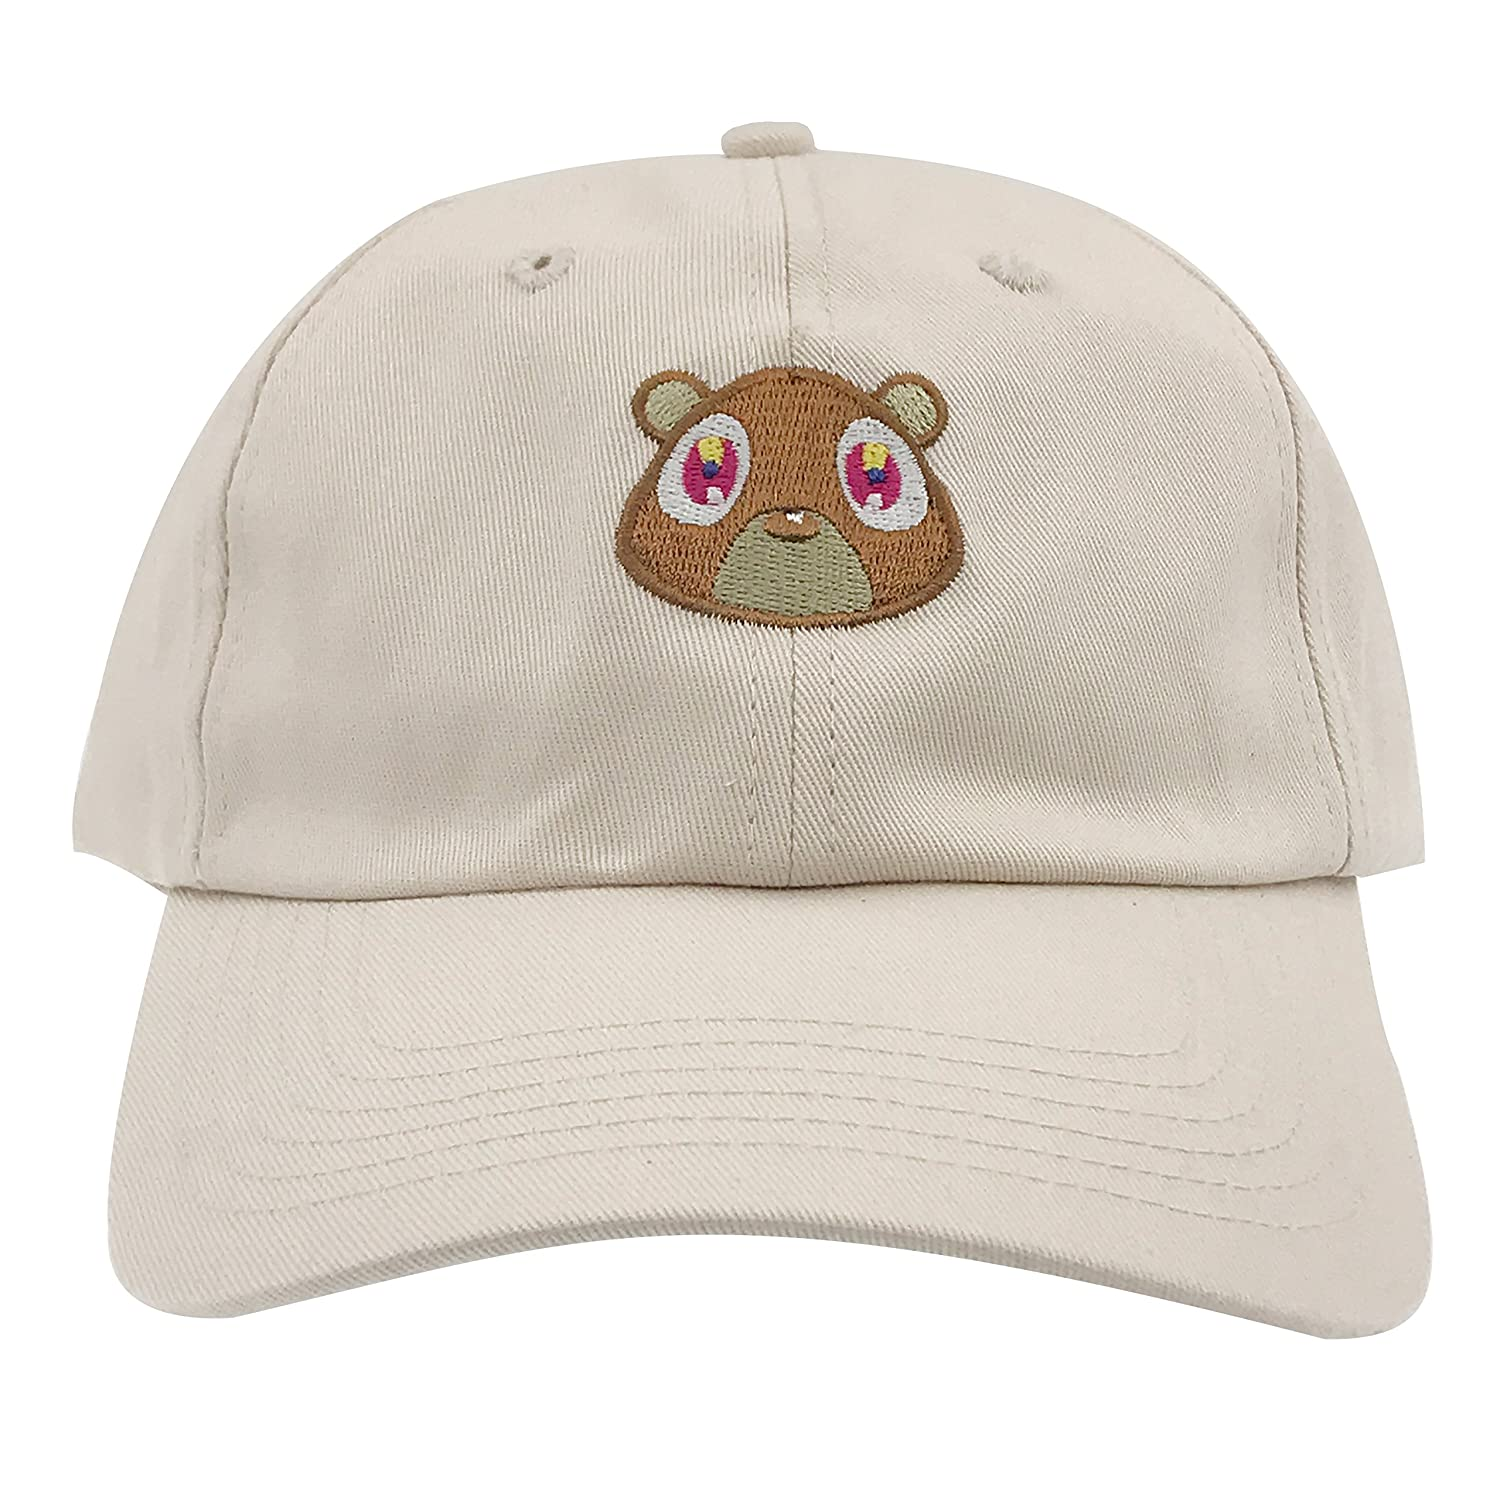 Generic Kanye West Bear Hat Dad Hat Strap Back Costume Head Men Women New  (Tan) at Amazon Men s Clothing store  8a1708ad626